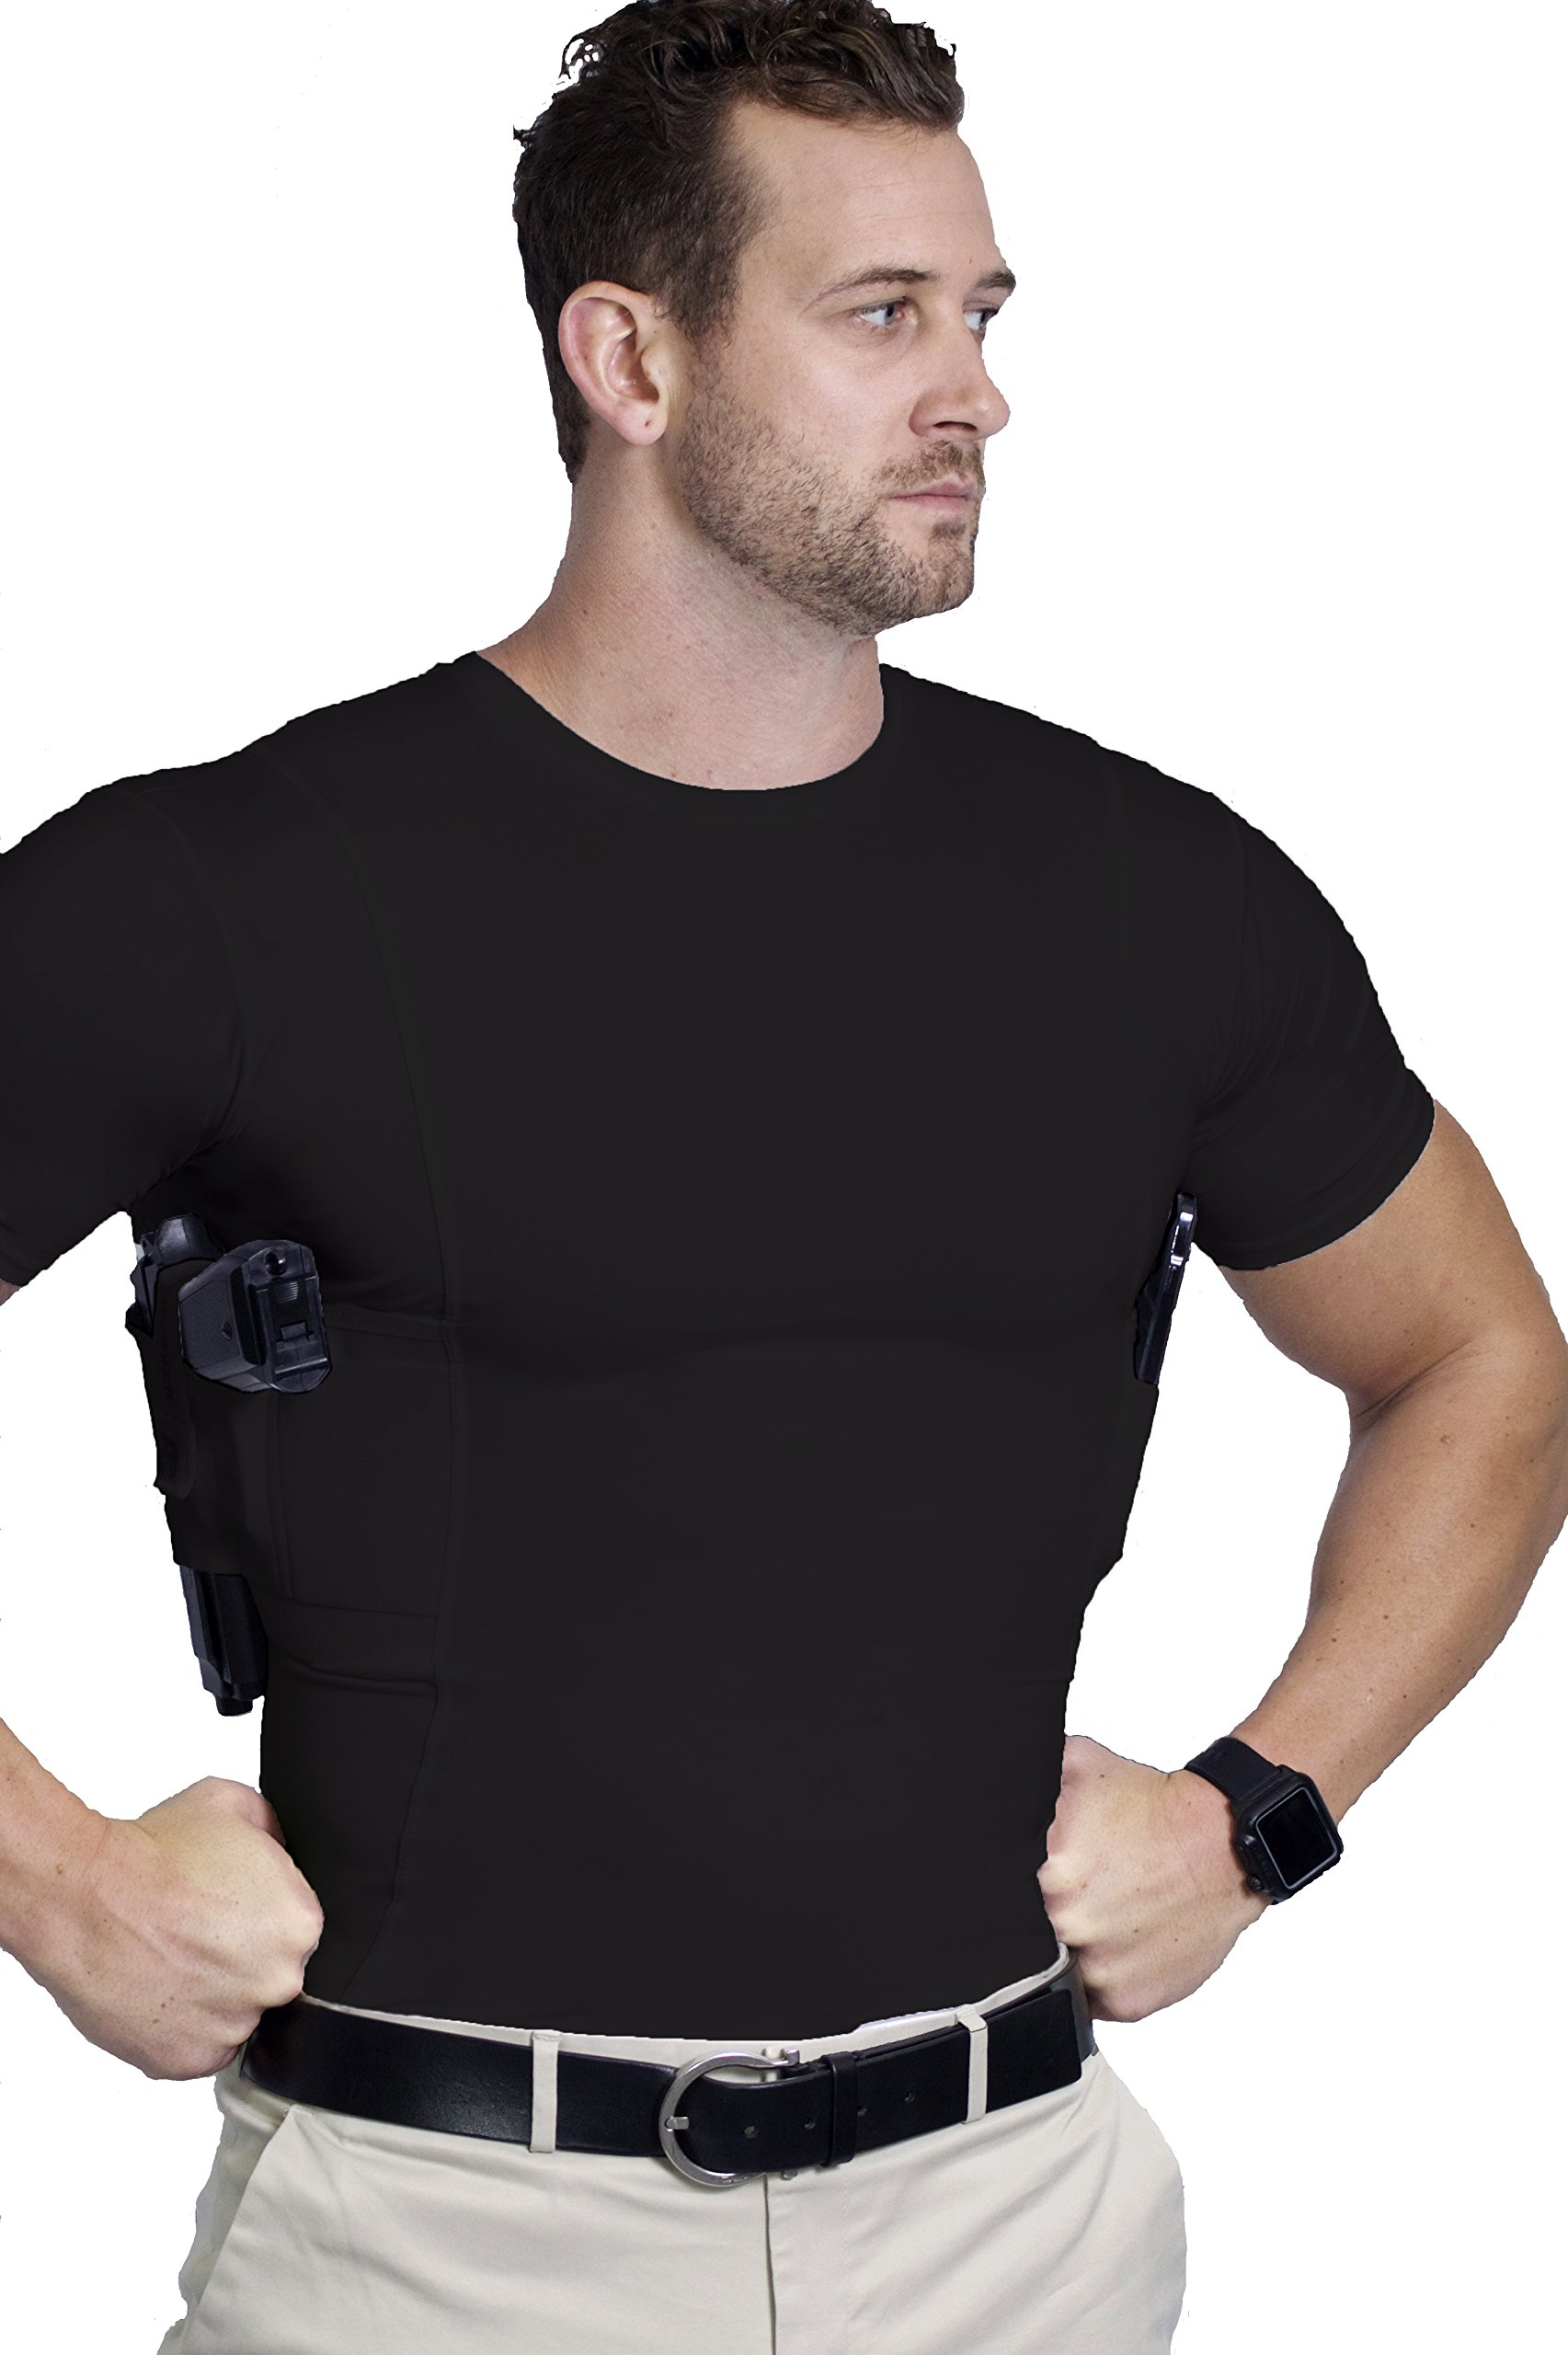 AC Undercover Concealed Carry Crew Neck Tshirt/CCW Tactical Clothing/Concealed Clothing REF. 511 (Black) (Black 3-Pack, Medium) by AC Undercover (Image #3)